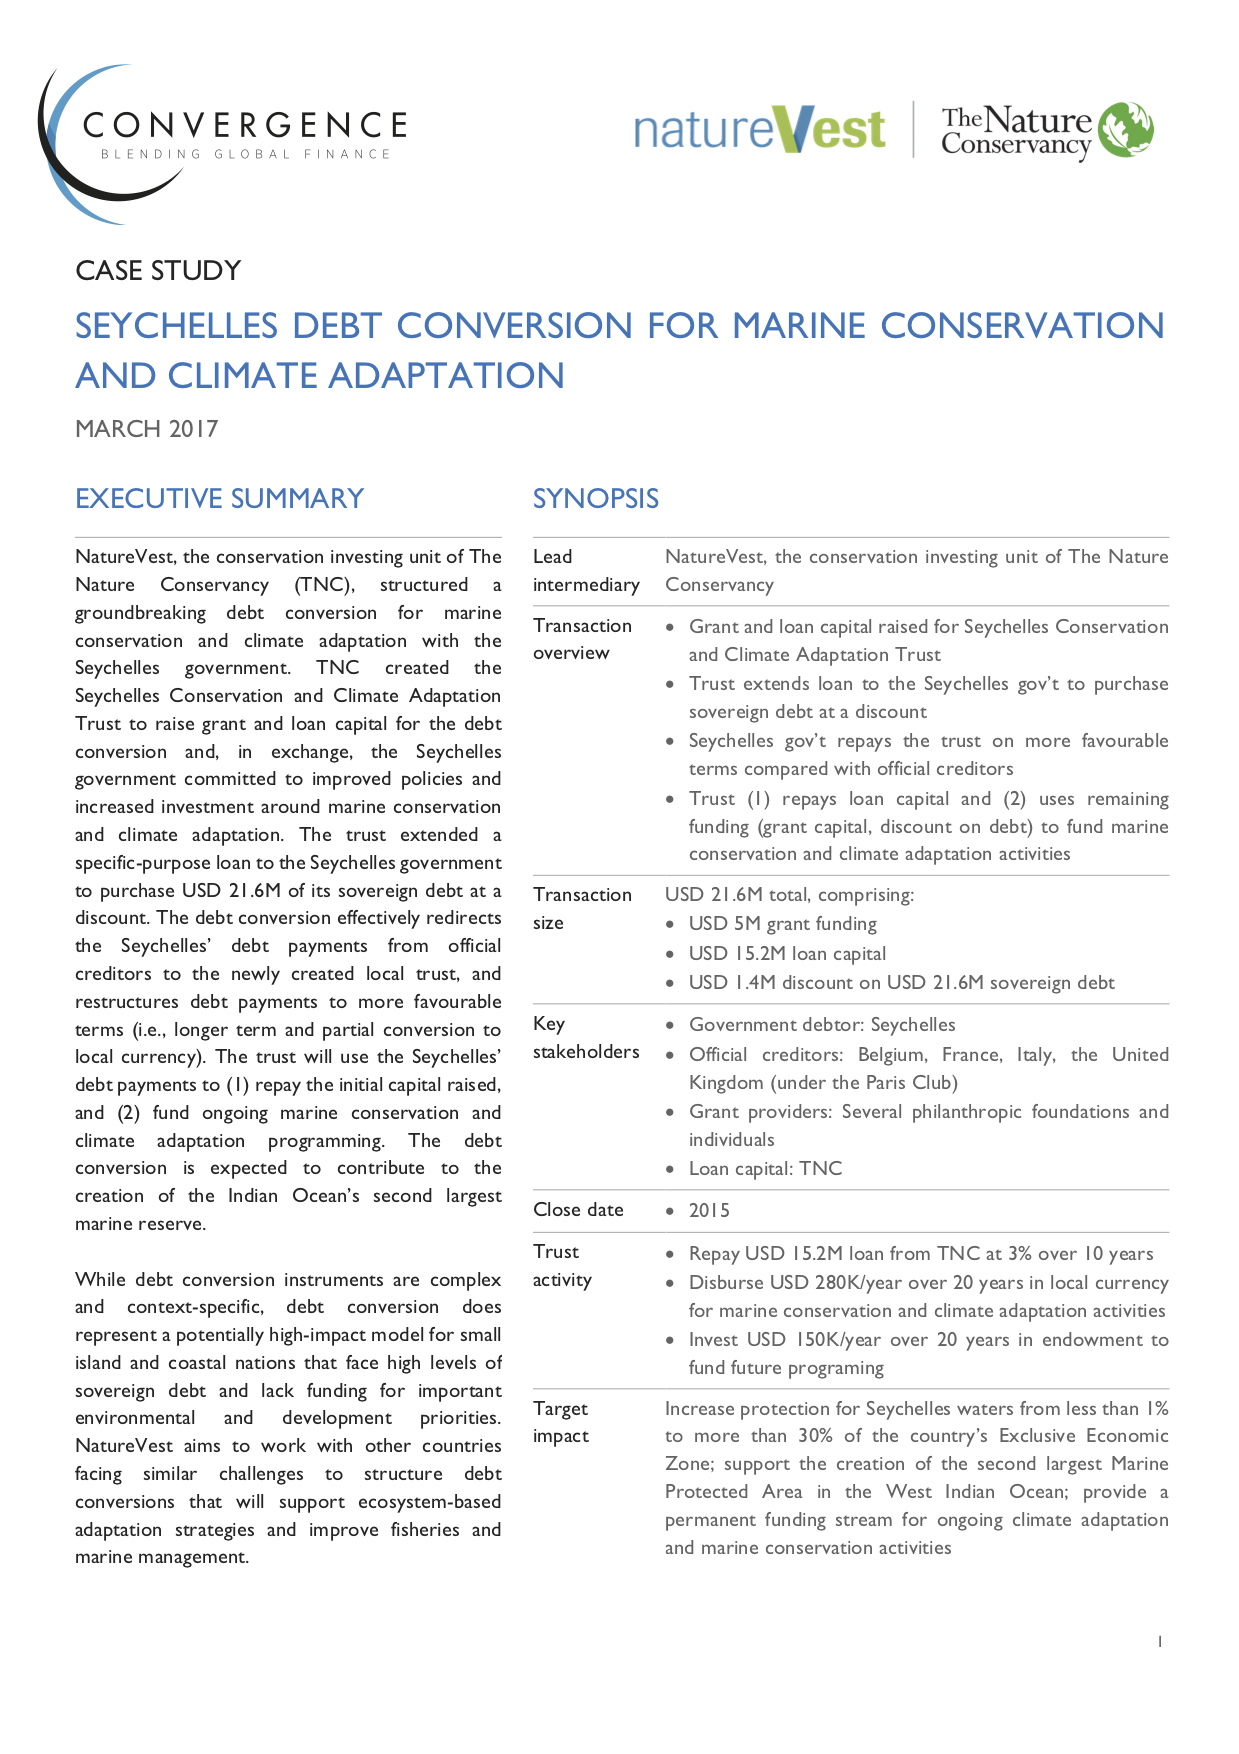 Seychelles Debt Conversion for Marine Conservation and Climate Adaptation Case Study